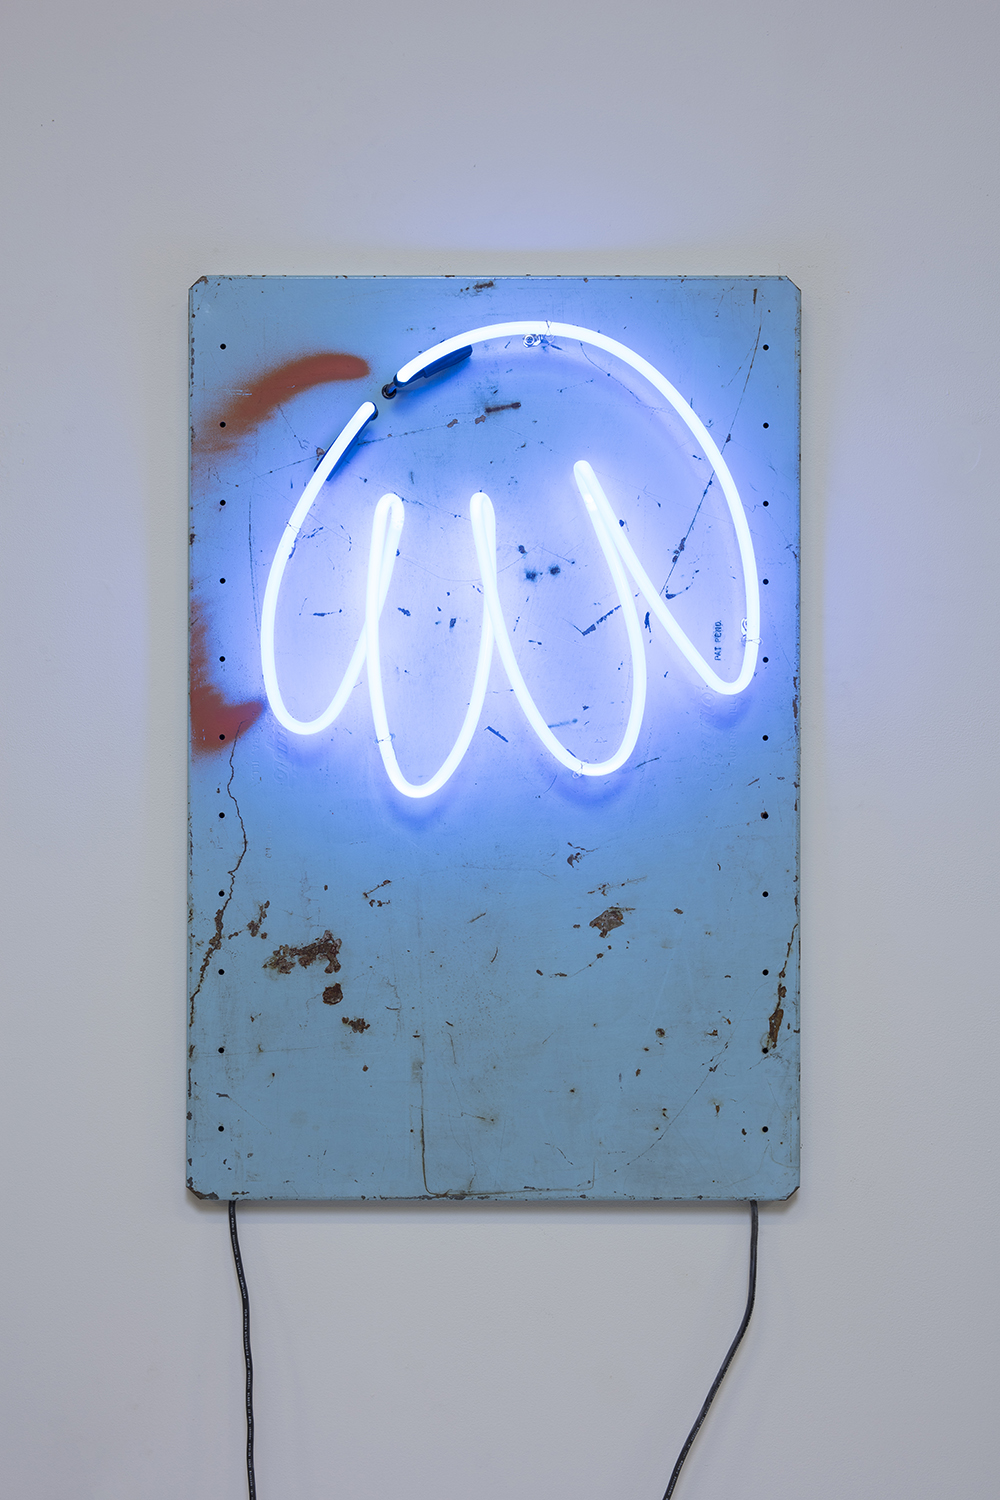 Yung Jake. <em>hair (also blue)</em>, 2020. Neon on found metal, 36 x 24 inches  (91.4 x 61 cm)